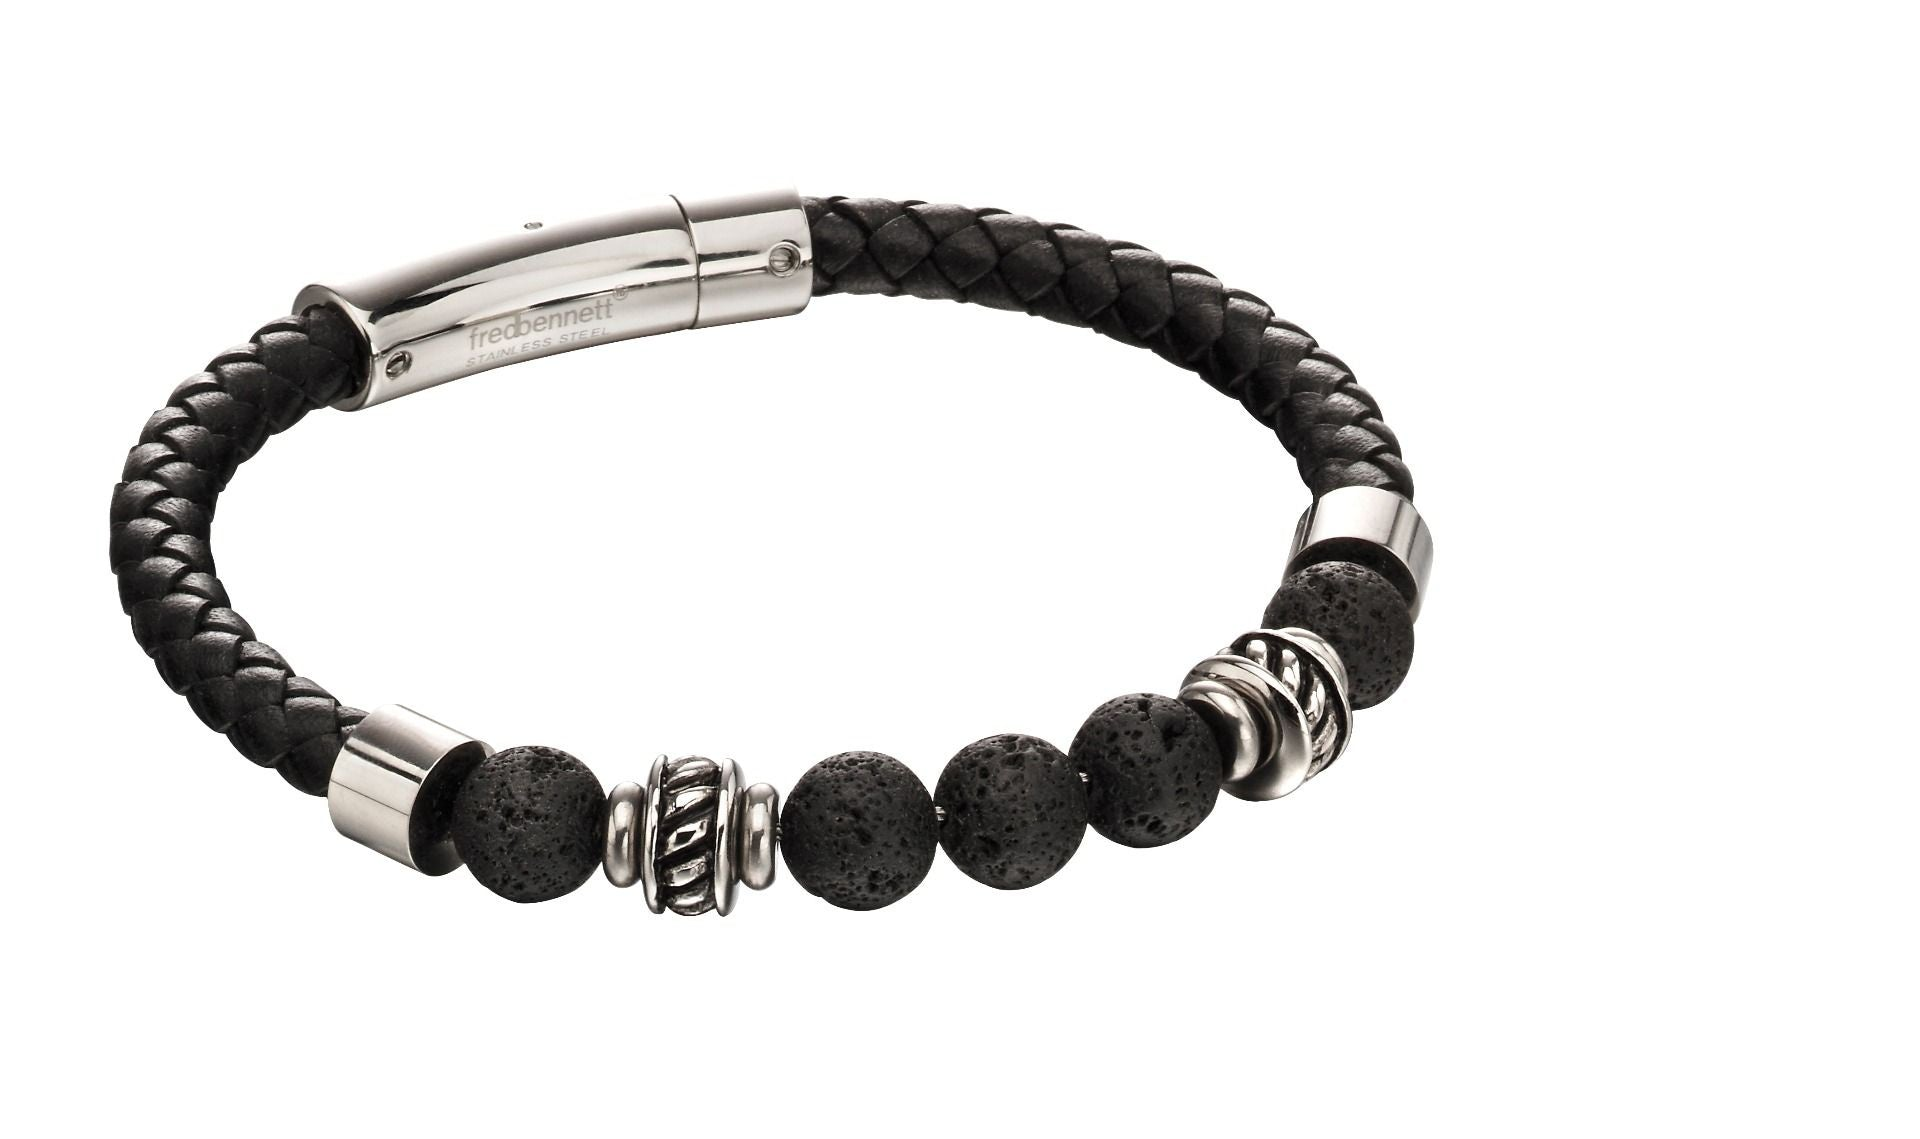 Fred Bennett Black Lava Bead Leather Bracelet B5097